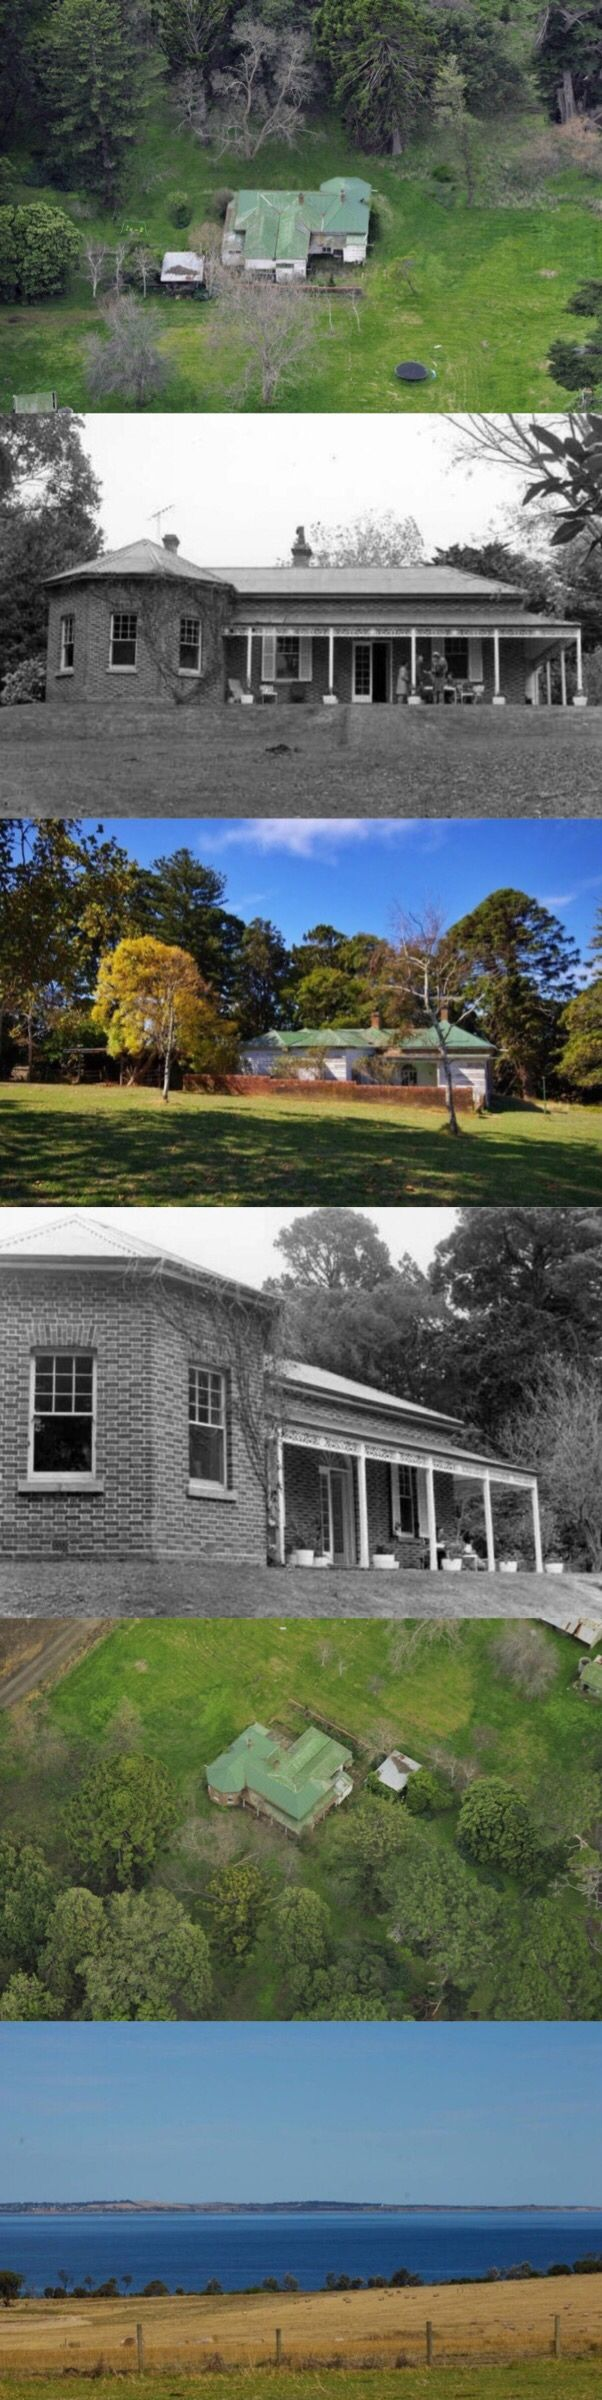 Minto, Merricks (Mornington Peninsula, 87km S of Melbourne), was purchased 1874 by Melbourne nurseryman T.C. Cole for his son, George W. Cole, who built the house in the 1880s of bricks reportedly baked onsite. George trialled paspalum and pine trees at Minto; his father, an associate of Von Mueller, sent exotic trees to plant for experimentation. Many still stand, inc. a rare avenue of stone pines. Minto has had a very long association with the regionally prominent Cole family.